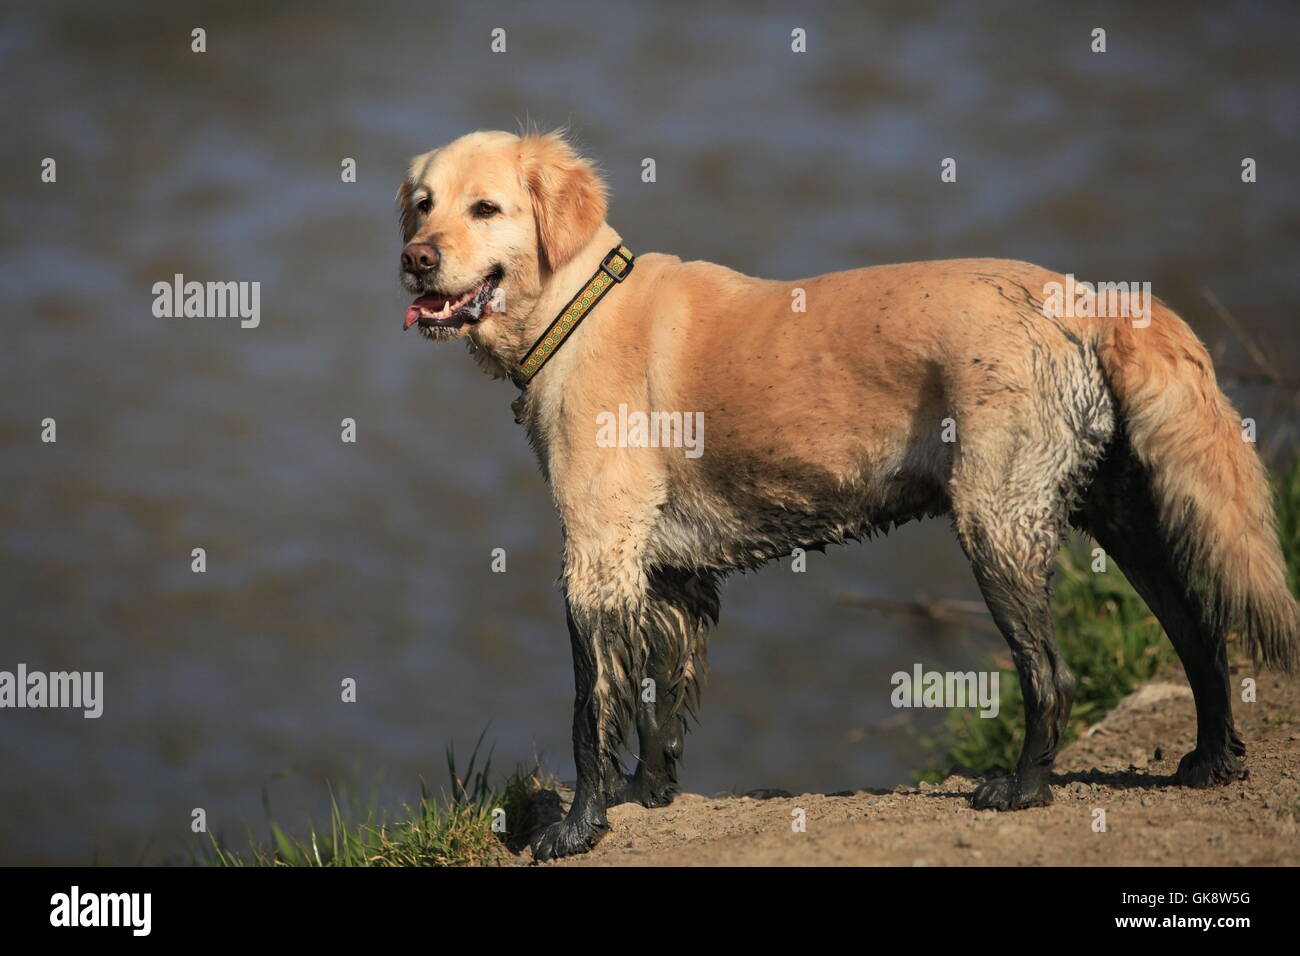 Happy Golden Retriever dog with muddy legs stands by water - Stock Image